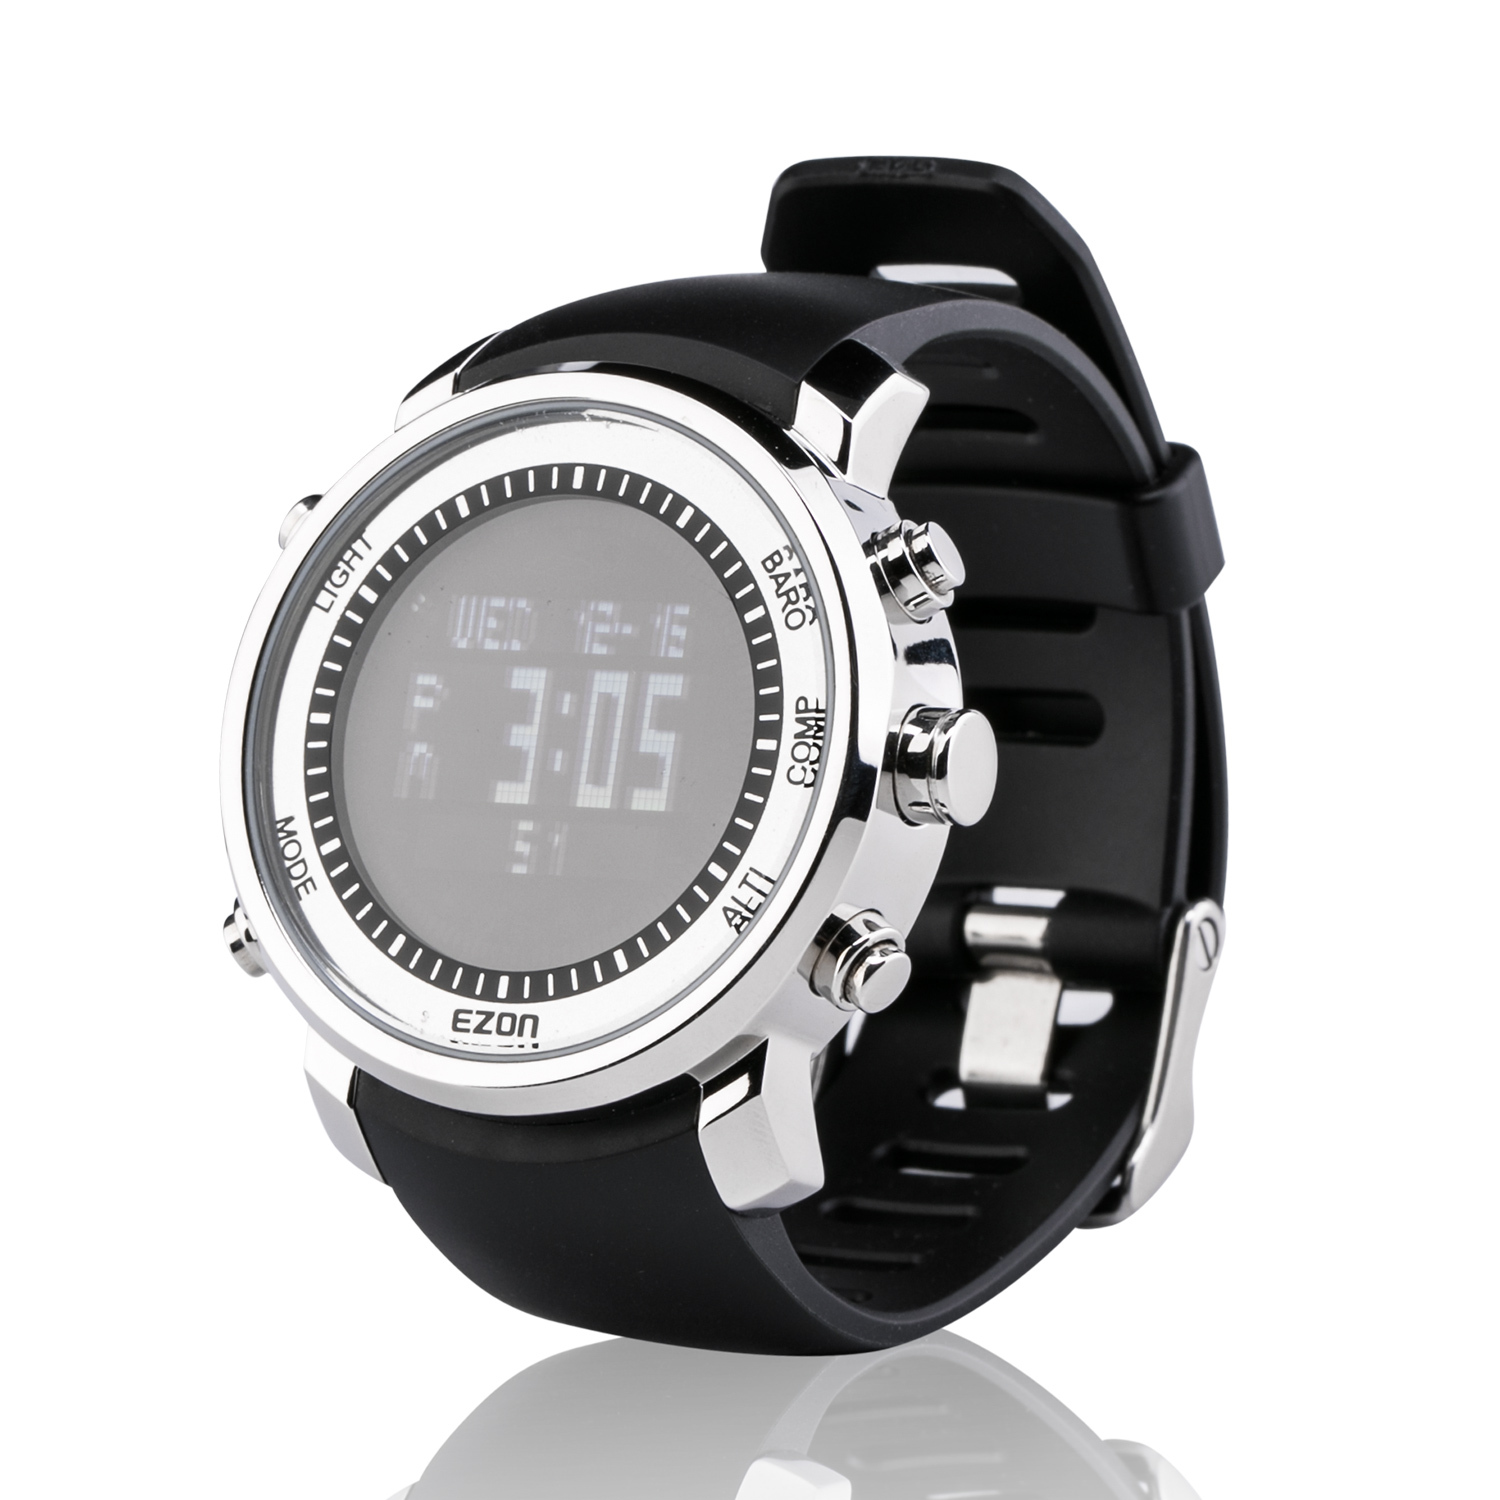 H506 Multifunction Mountaineerting Watch